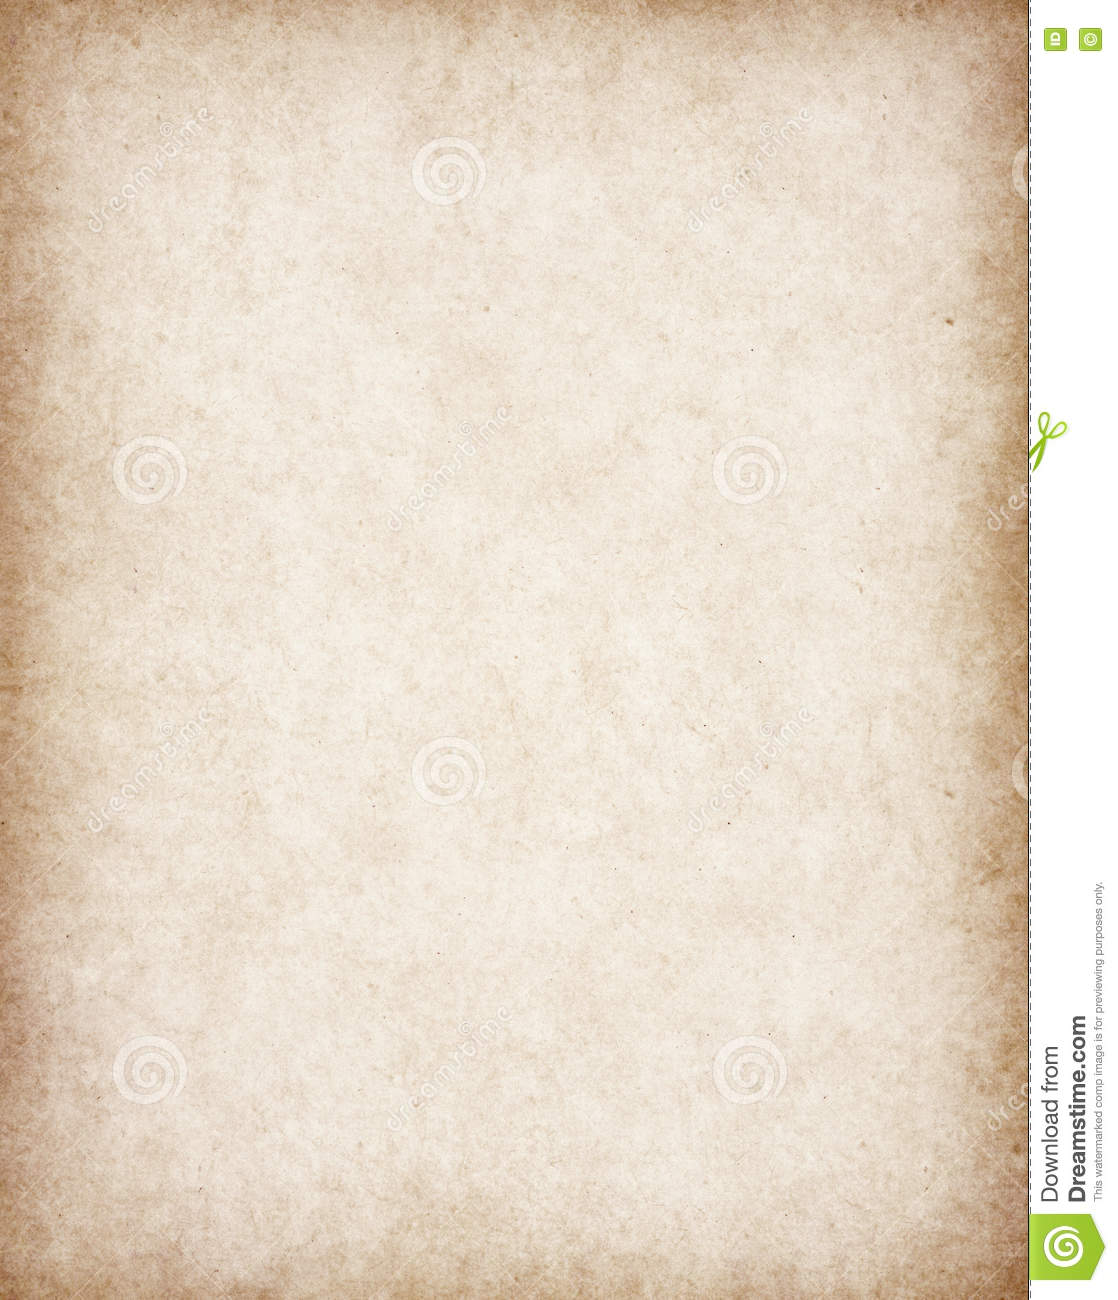 Antique Cracked Paper Texture Stock Illustration Illustration Of